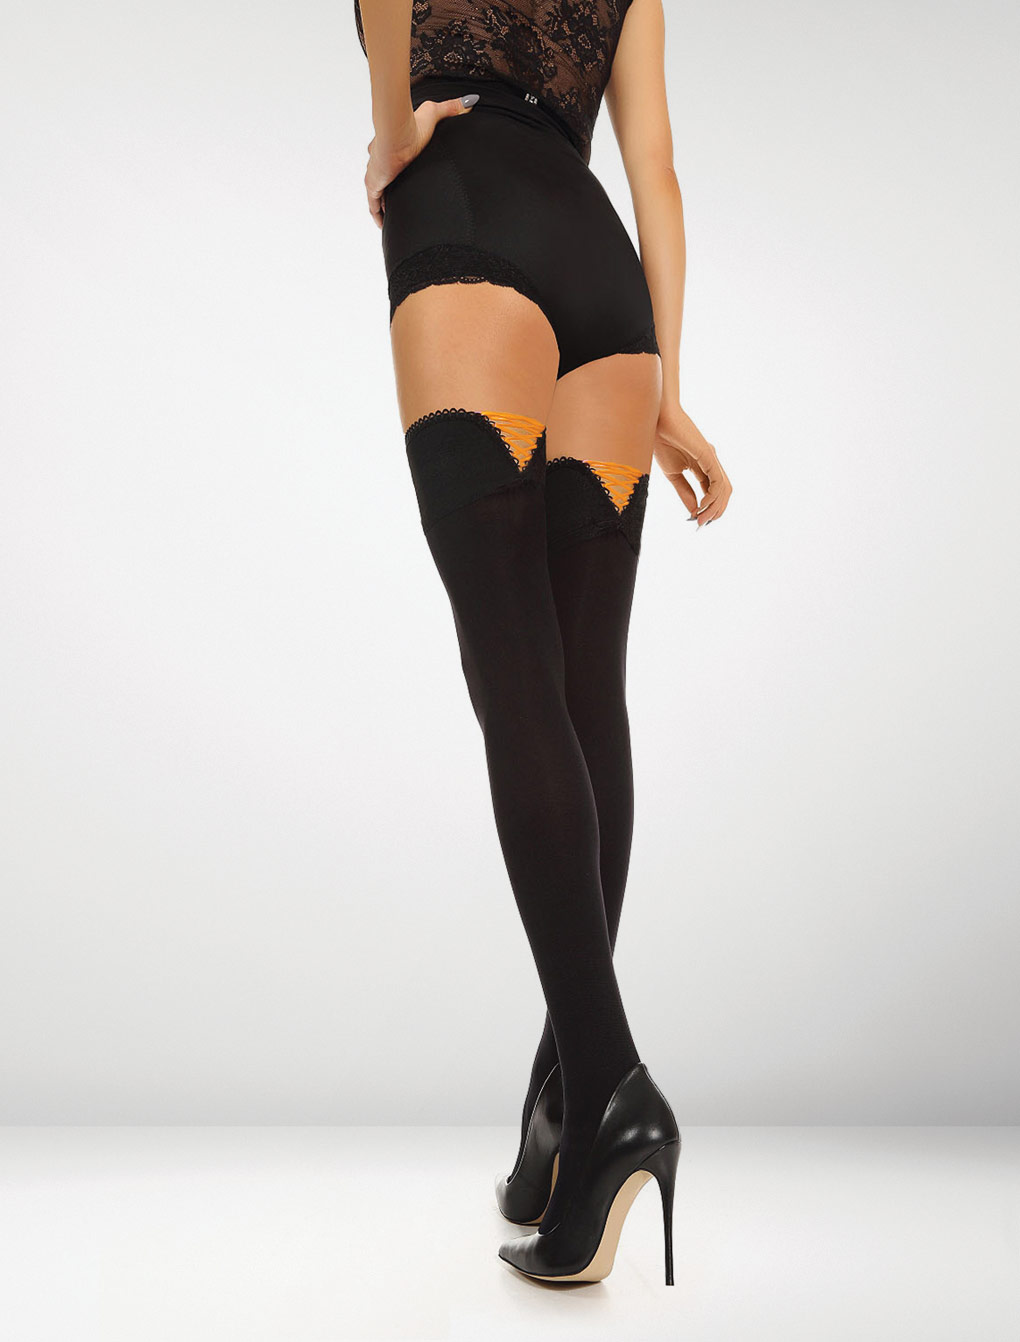 Ferrara 80 Denier Hold Ups Perfect Fit - Black / Orange Delight Accent